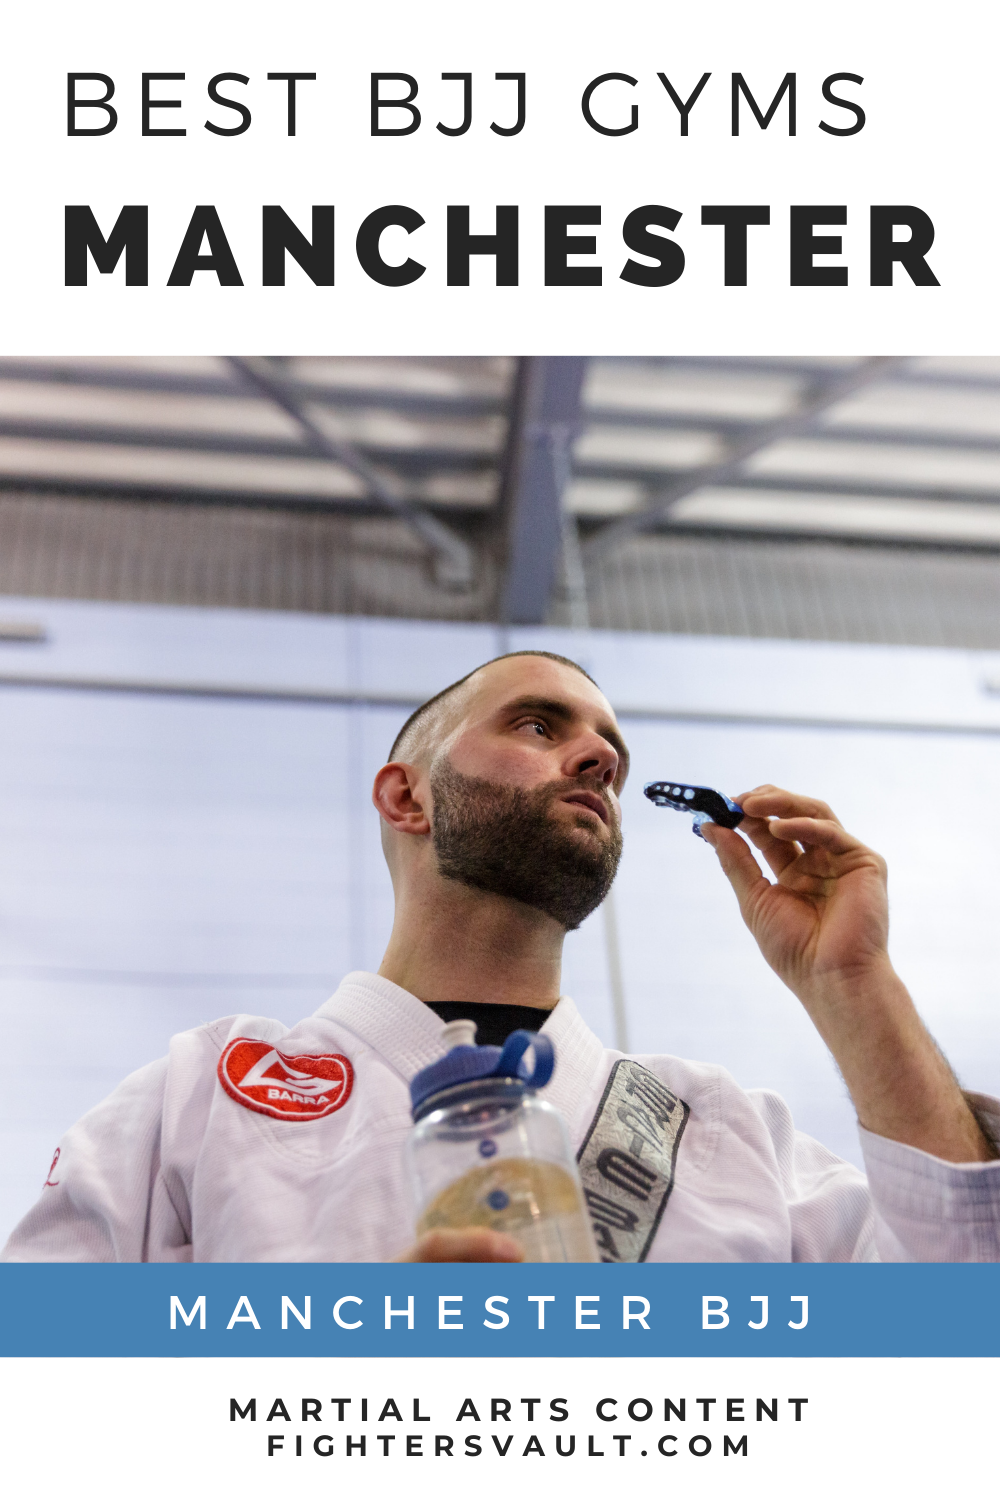 Manchester is home to several of the best BJJ gyms in the UK. Below I article 7 BJJ gyms in Manchester you should check out. #bjj #grappling #jiujitsu #nogi #fighter #mma #ufc #boxing #karate #muaythai